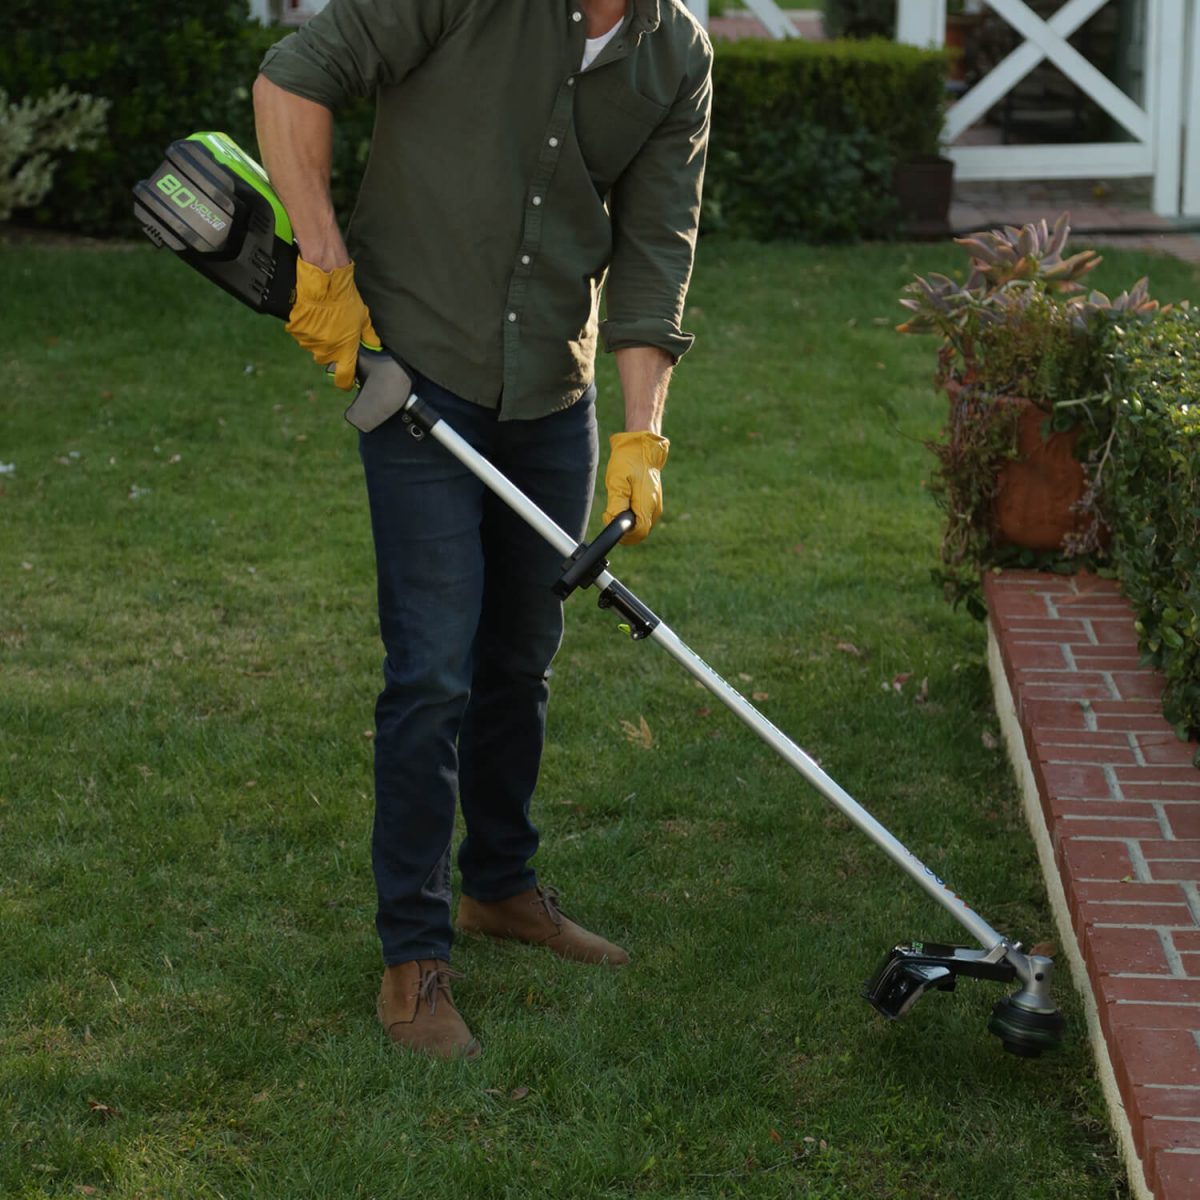 Battery Powered Weed Eater/String Trimmer